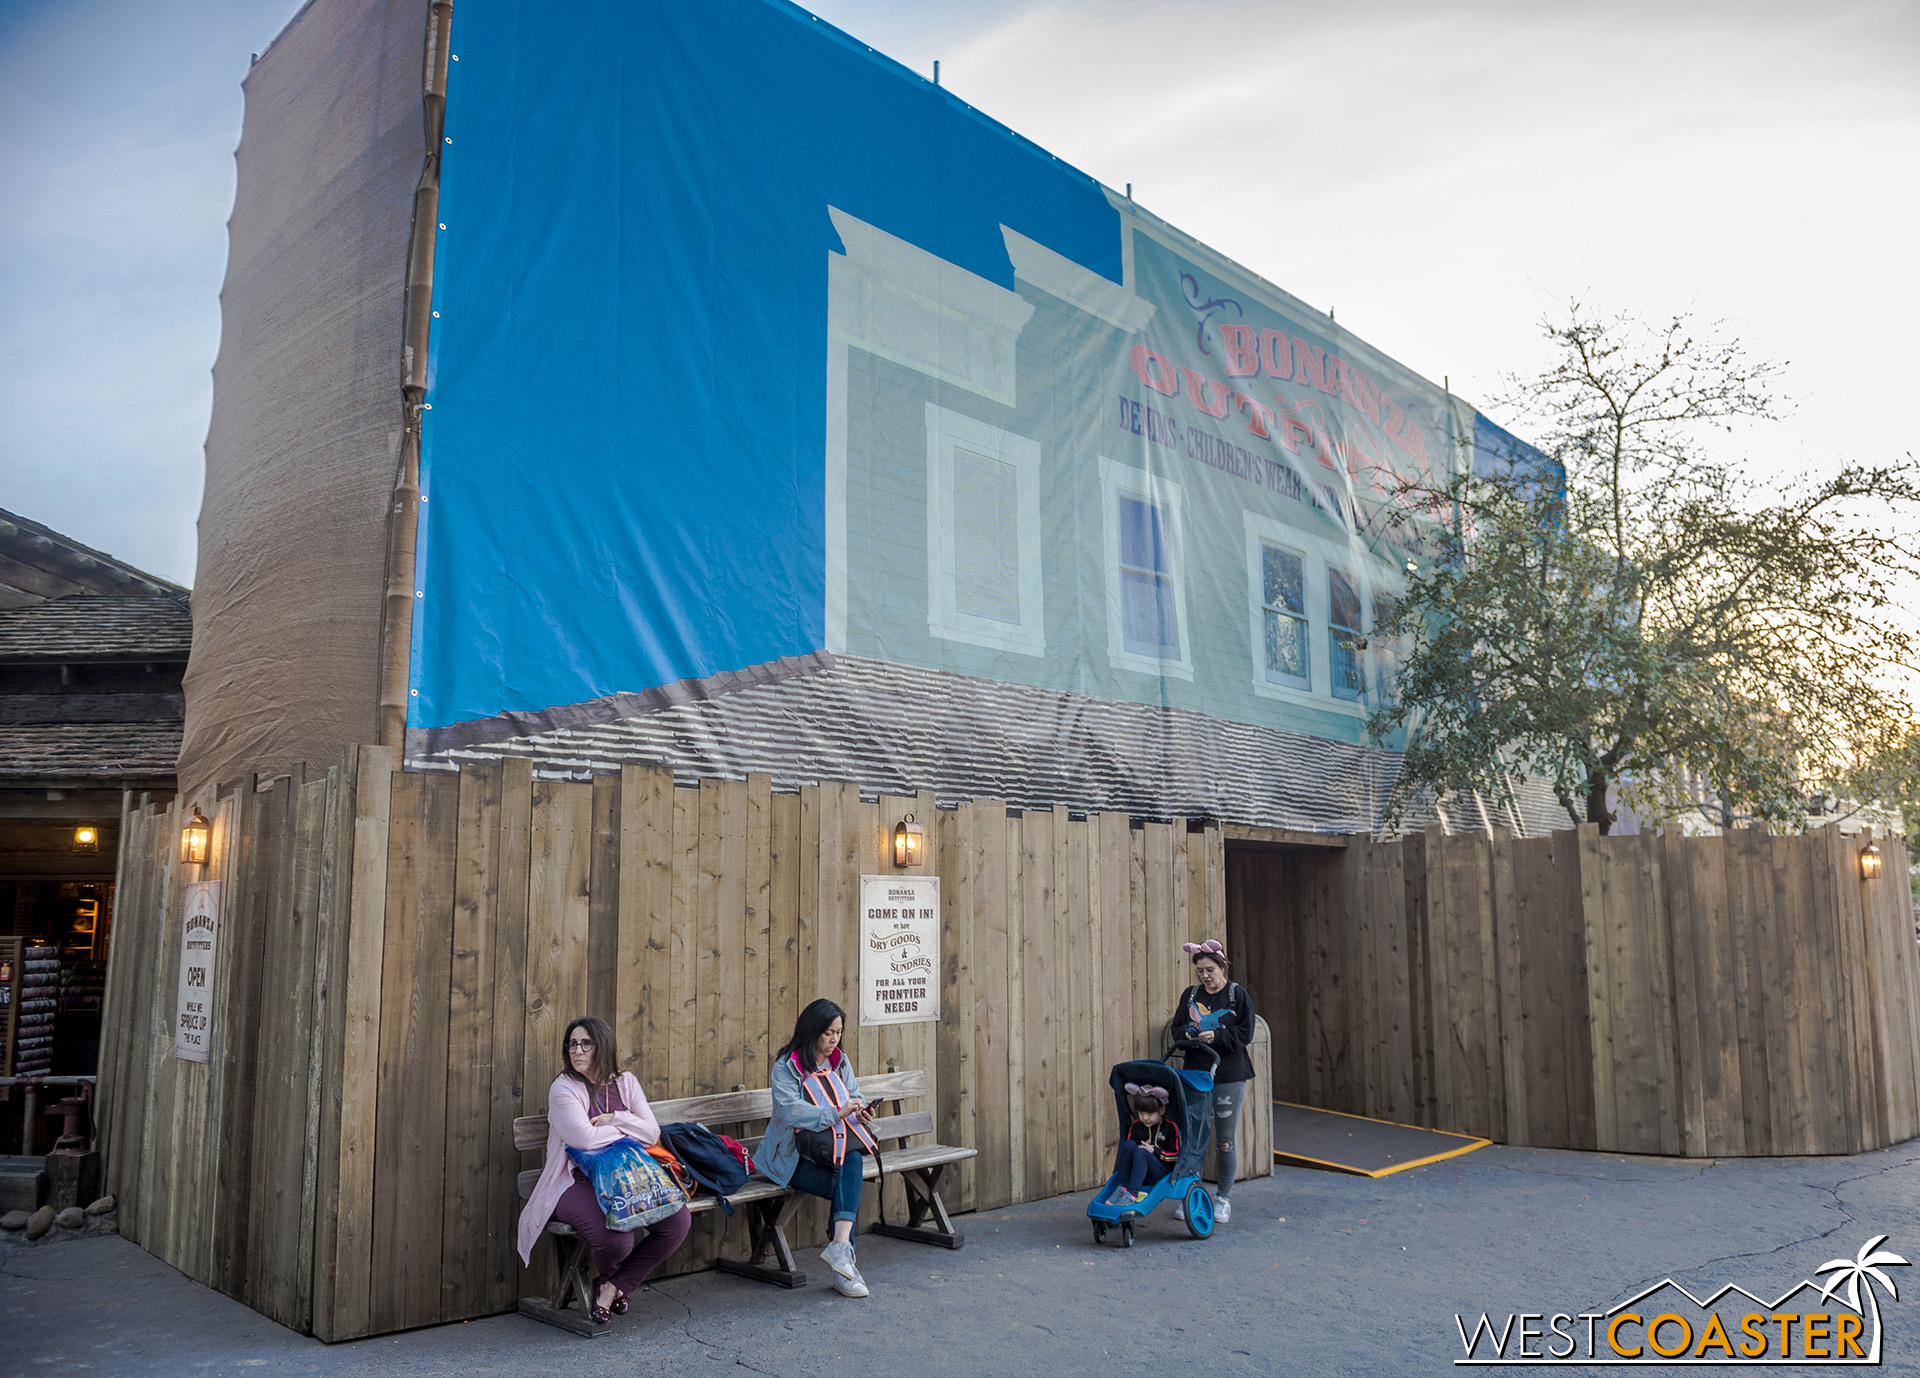 Some of the facades in Frontierland are getting repainted.